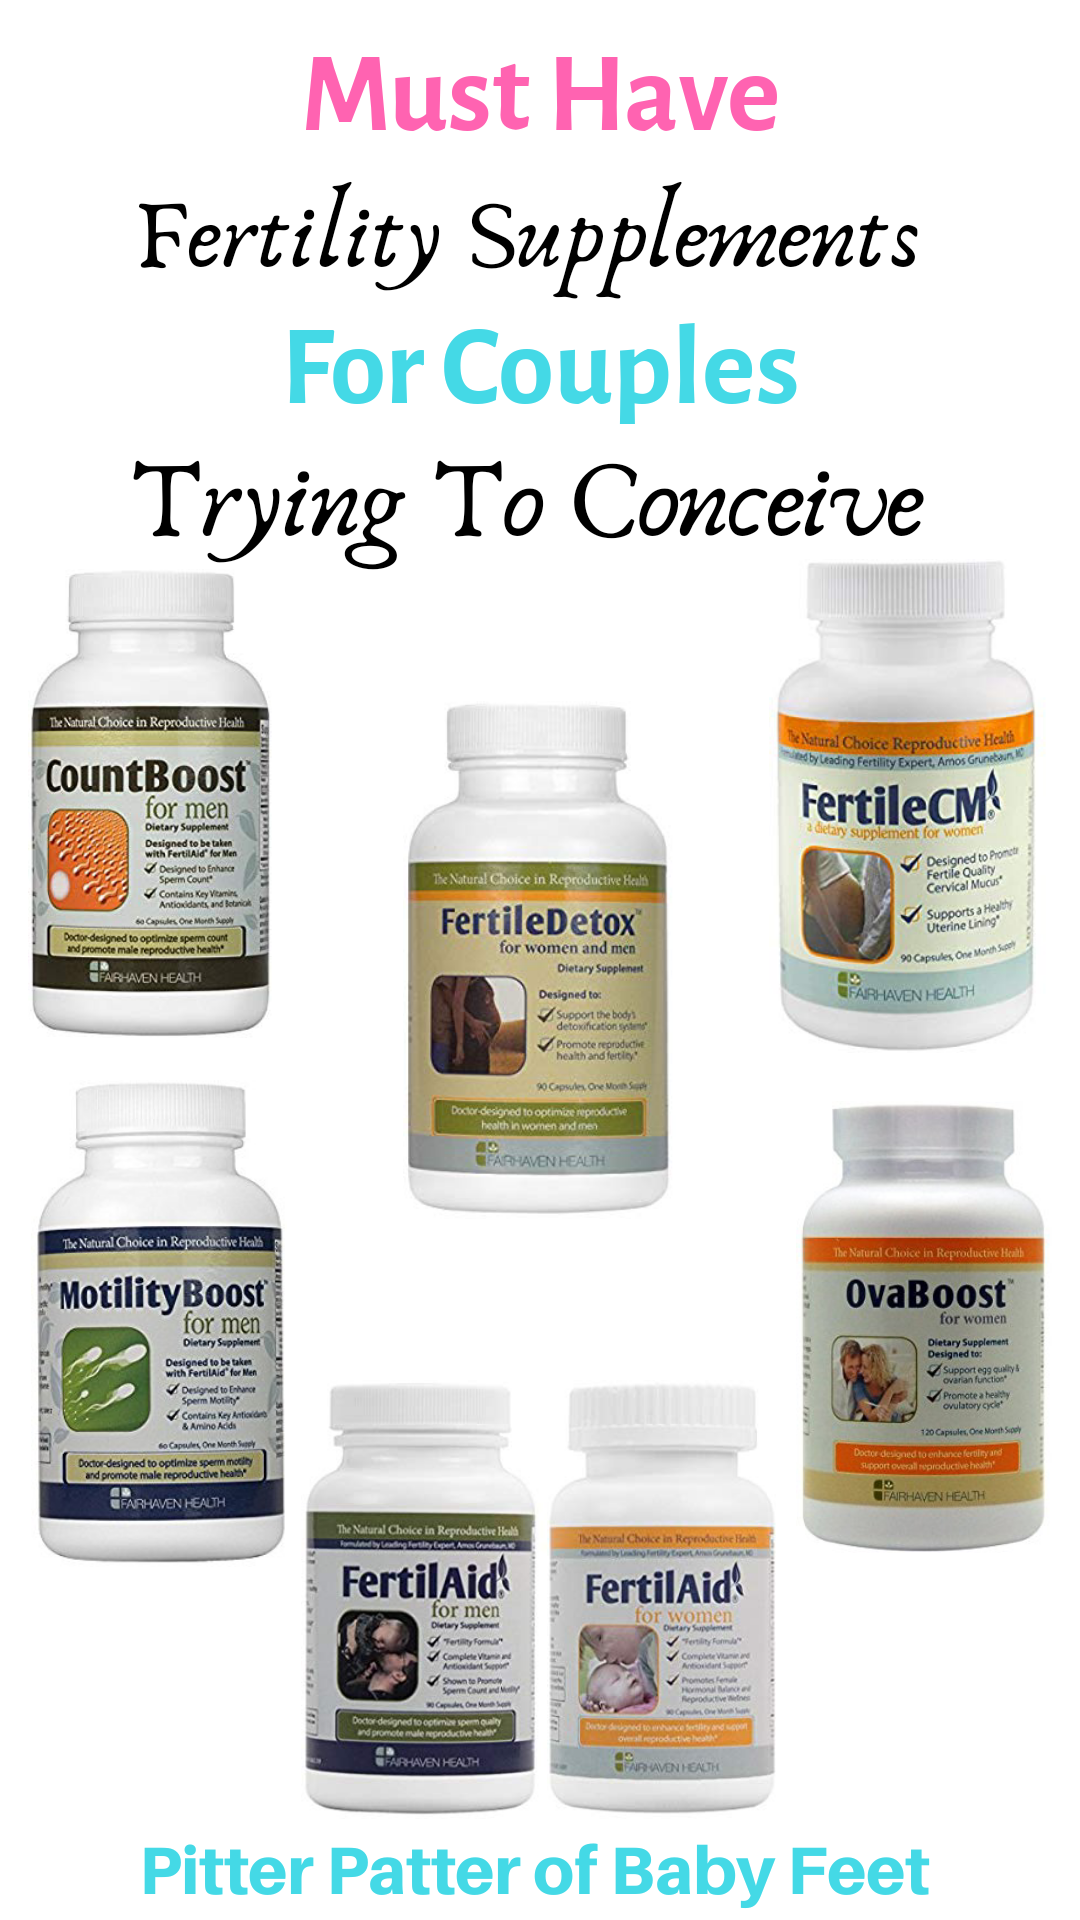 It Takes Two To Make A Baby If You Re Only Focusing On Your Own Reproductive Health You Re Only Focusing Fertility Supplements Trying To Conceive Fertility